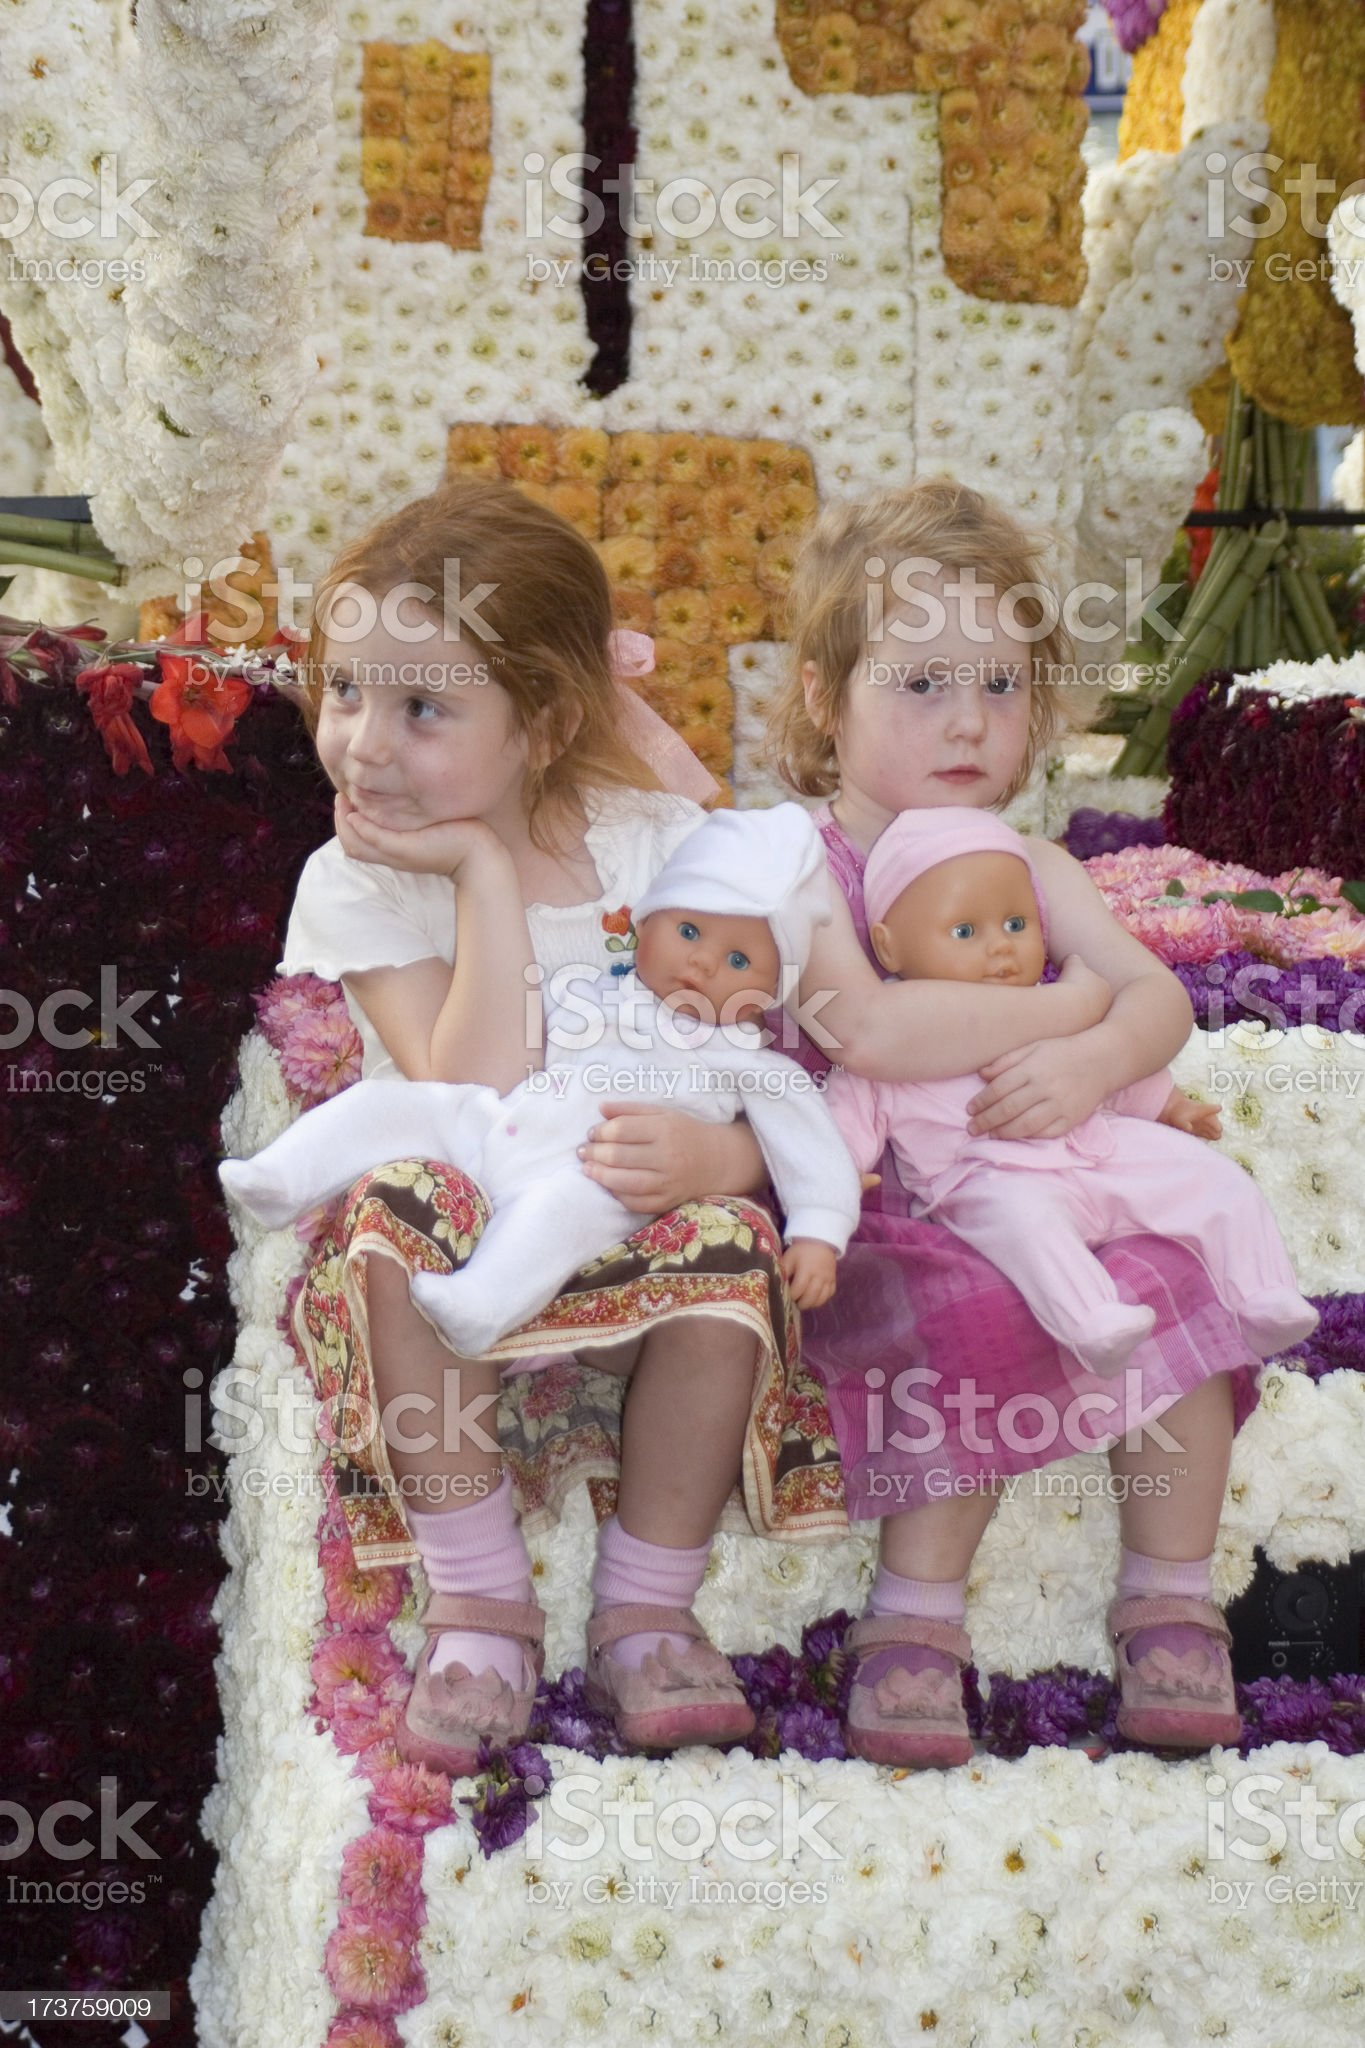 Bored girls on flower parade wagon royalty-free stock photo